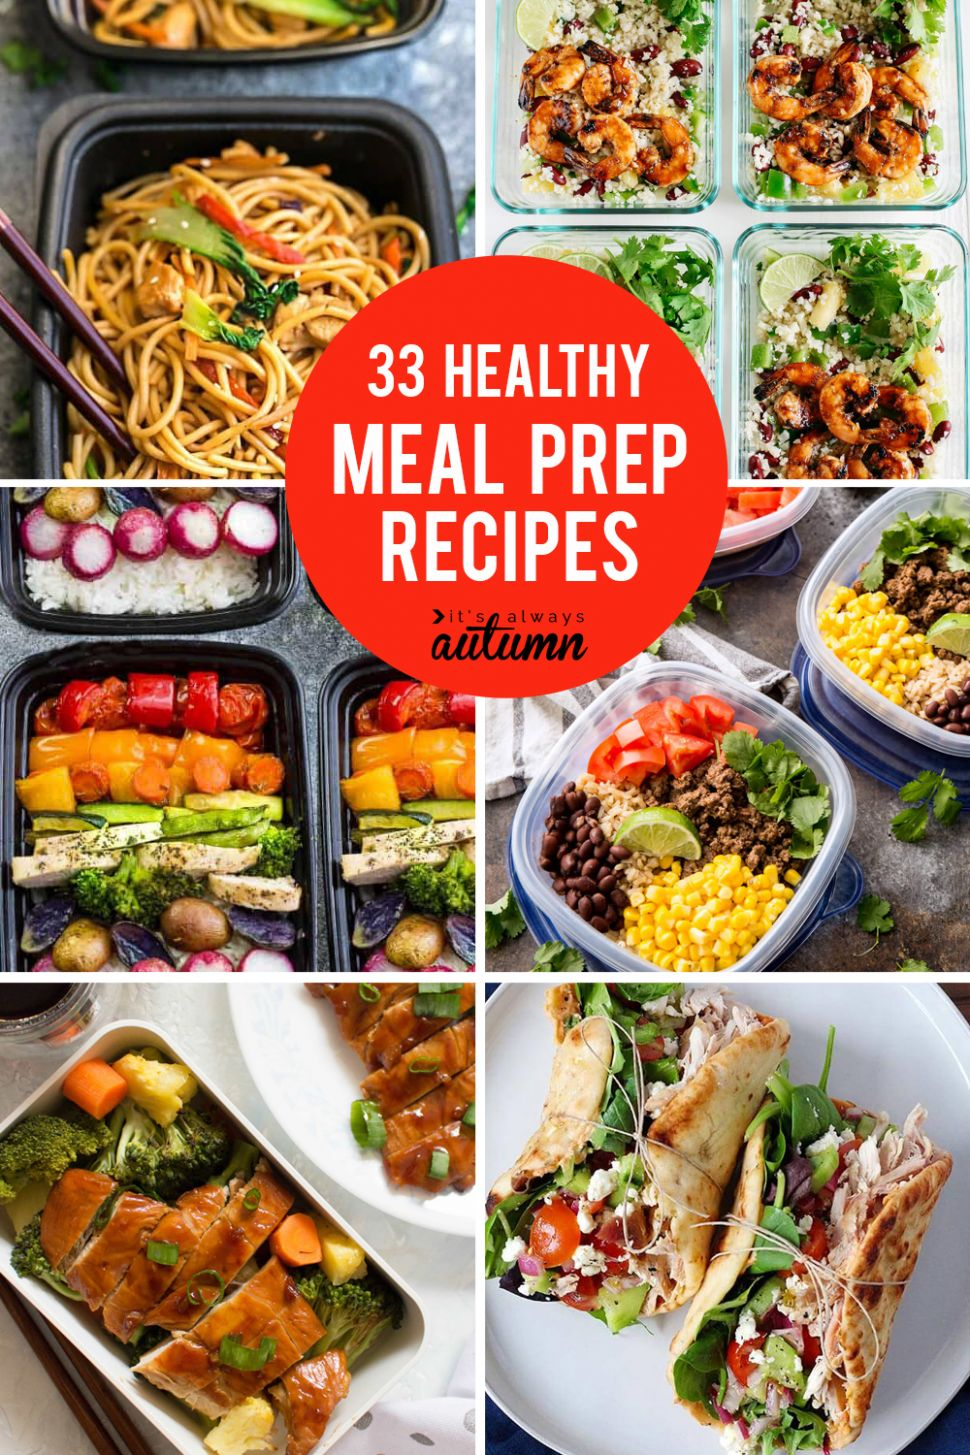 11 delicious meal prep recipes for healthy lunches that taste ..